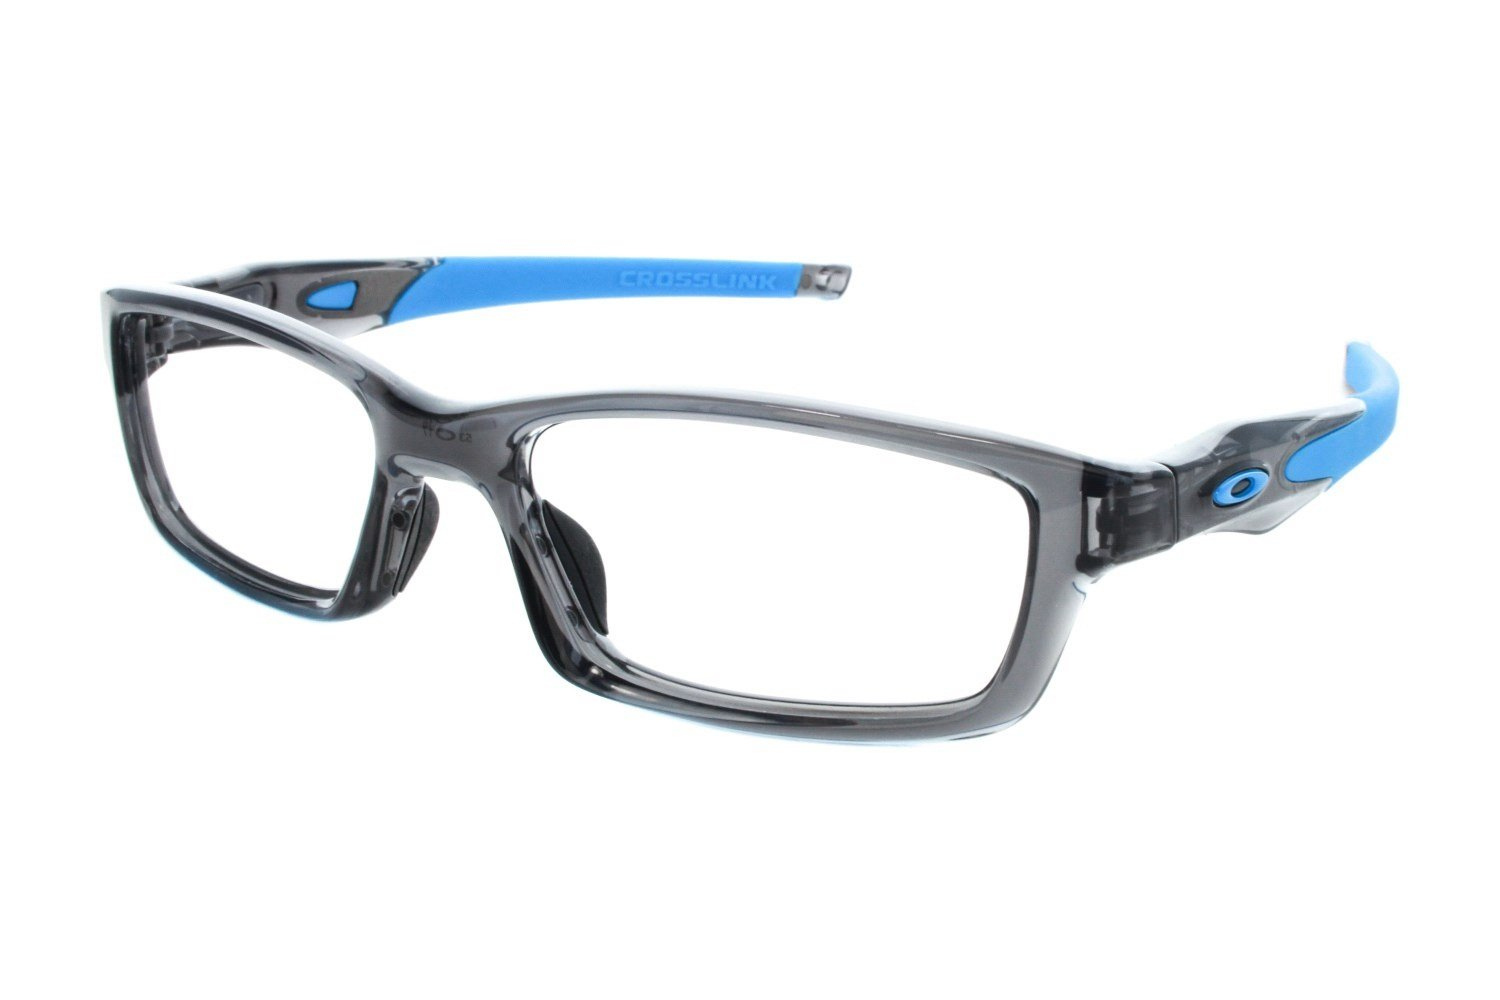 Oakley Crosslink 53 Prescription Eyeglasses Frames